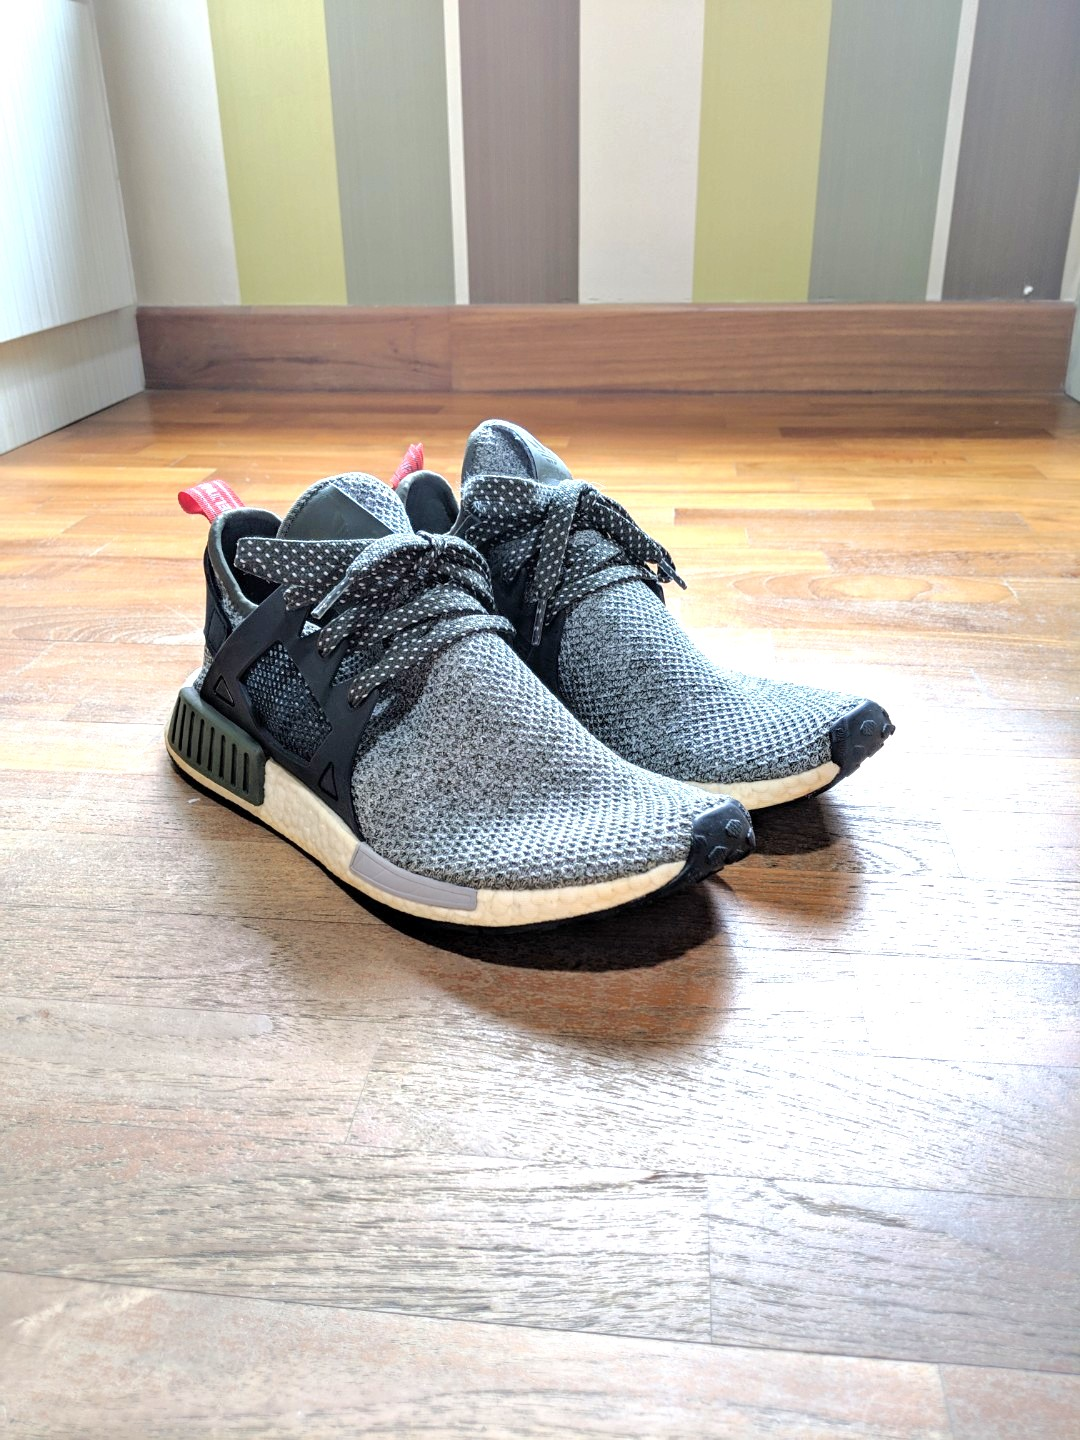 cheaper 8c061 dccc0 Adidas Nmd XR1 Green US10 / UK9.5 / EUR 44